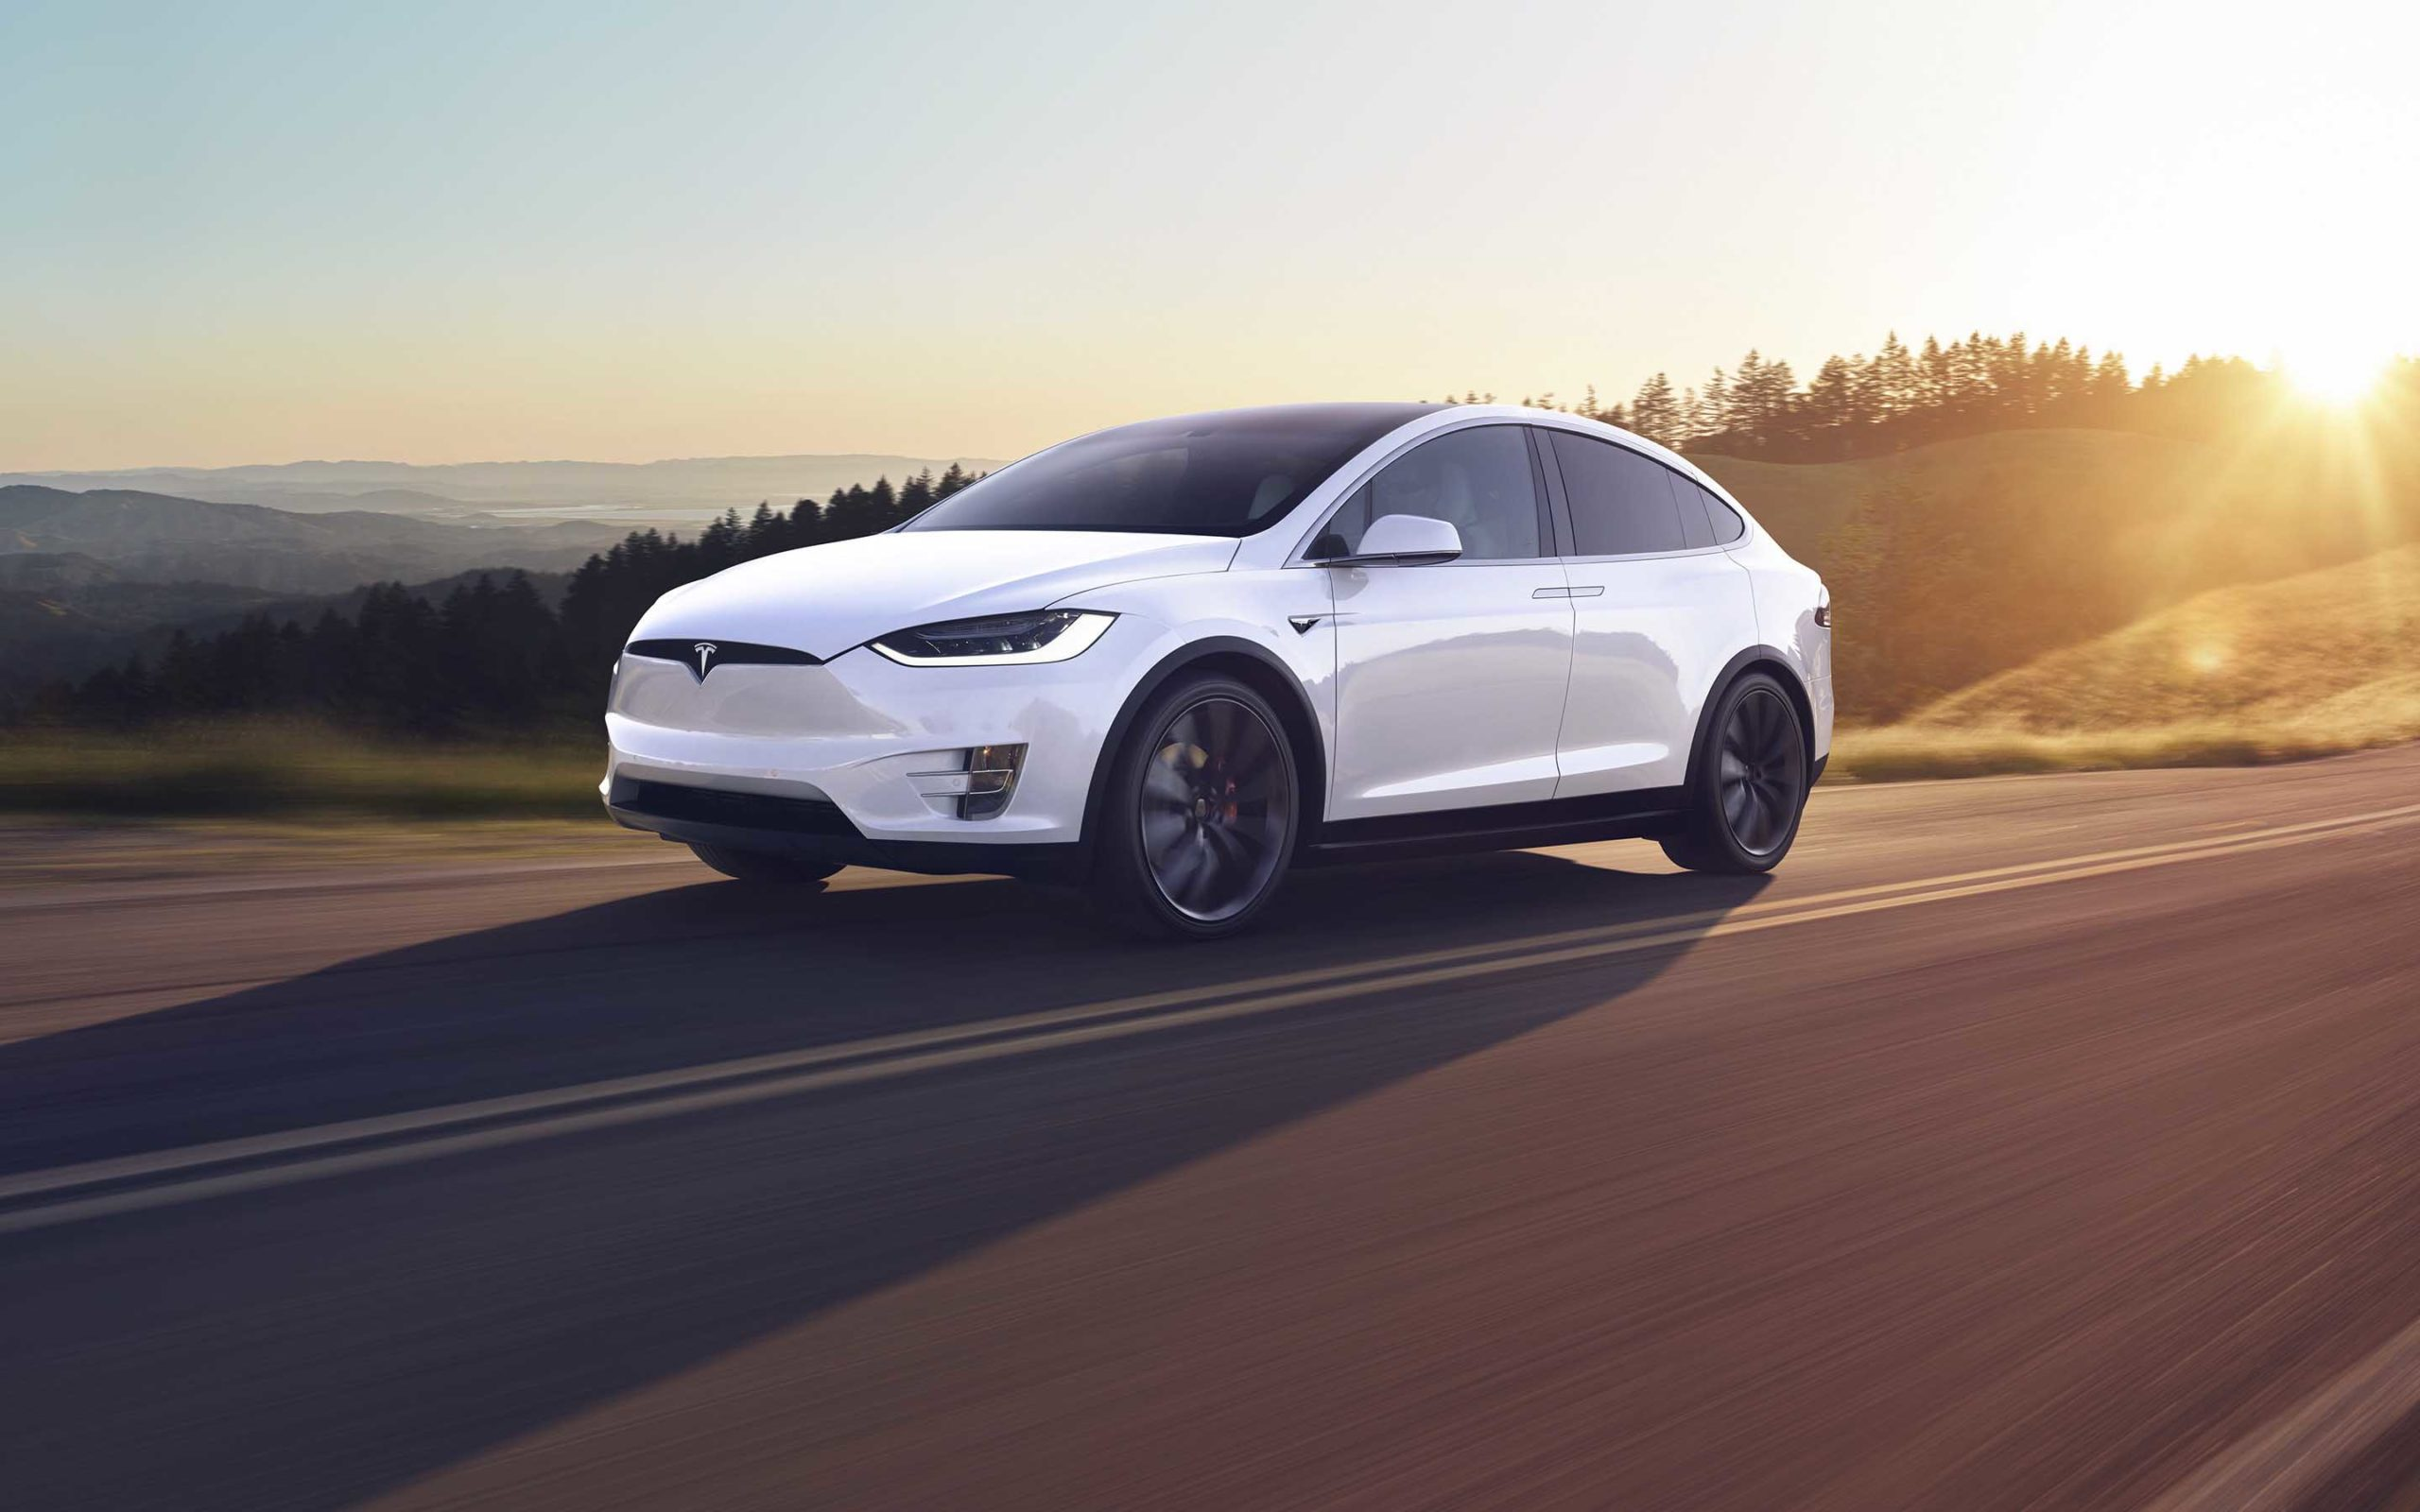 Tesla Model X pearl white on the road with the sunset behind it